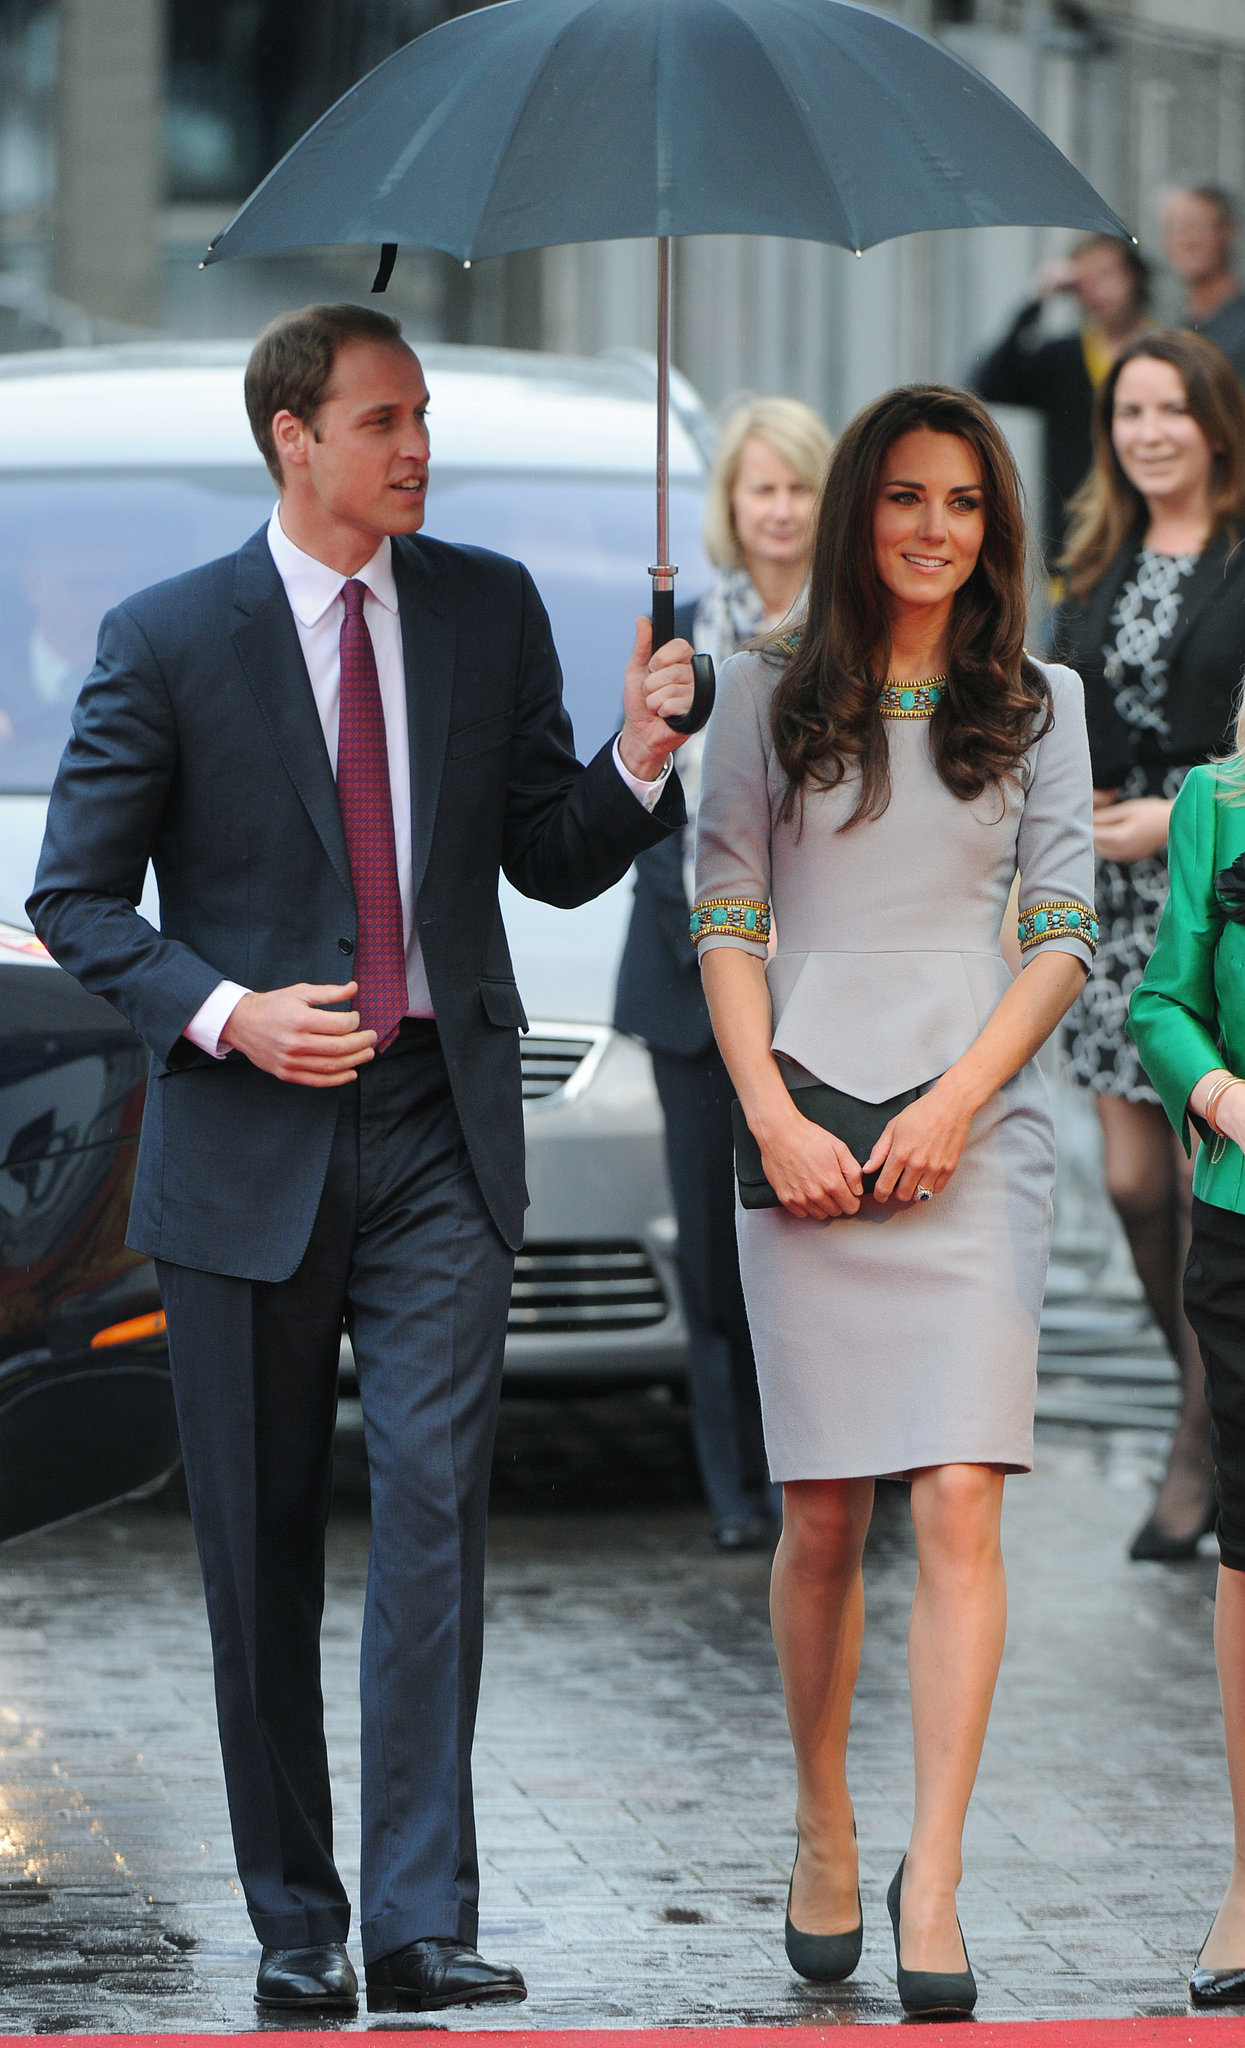 William held an umbrella over Kate's head while heading into a London theater in April 2012.